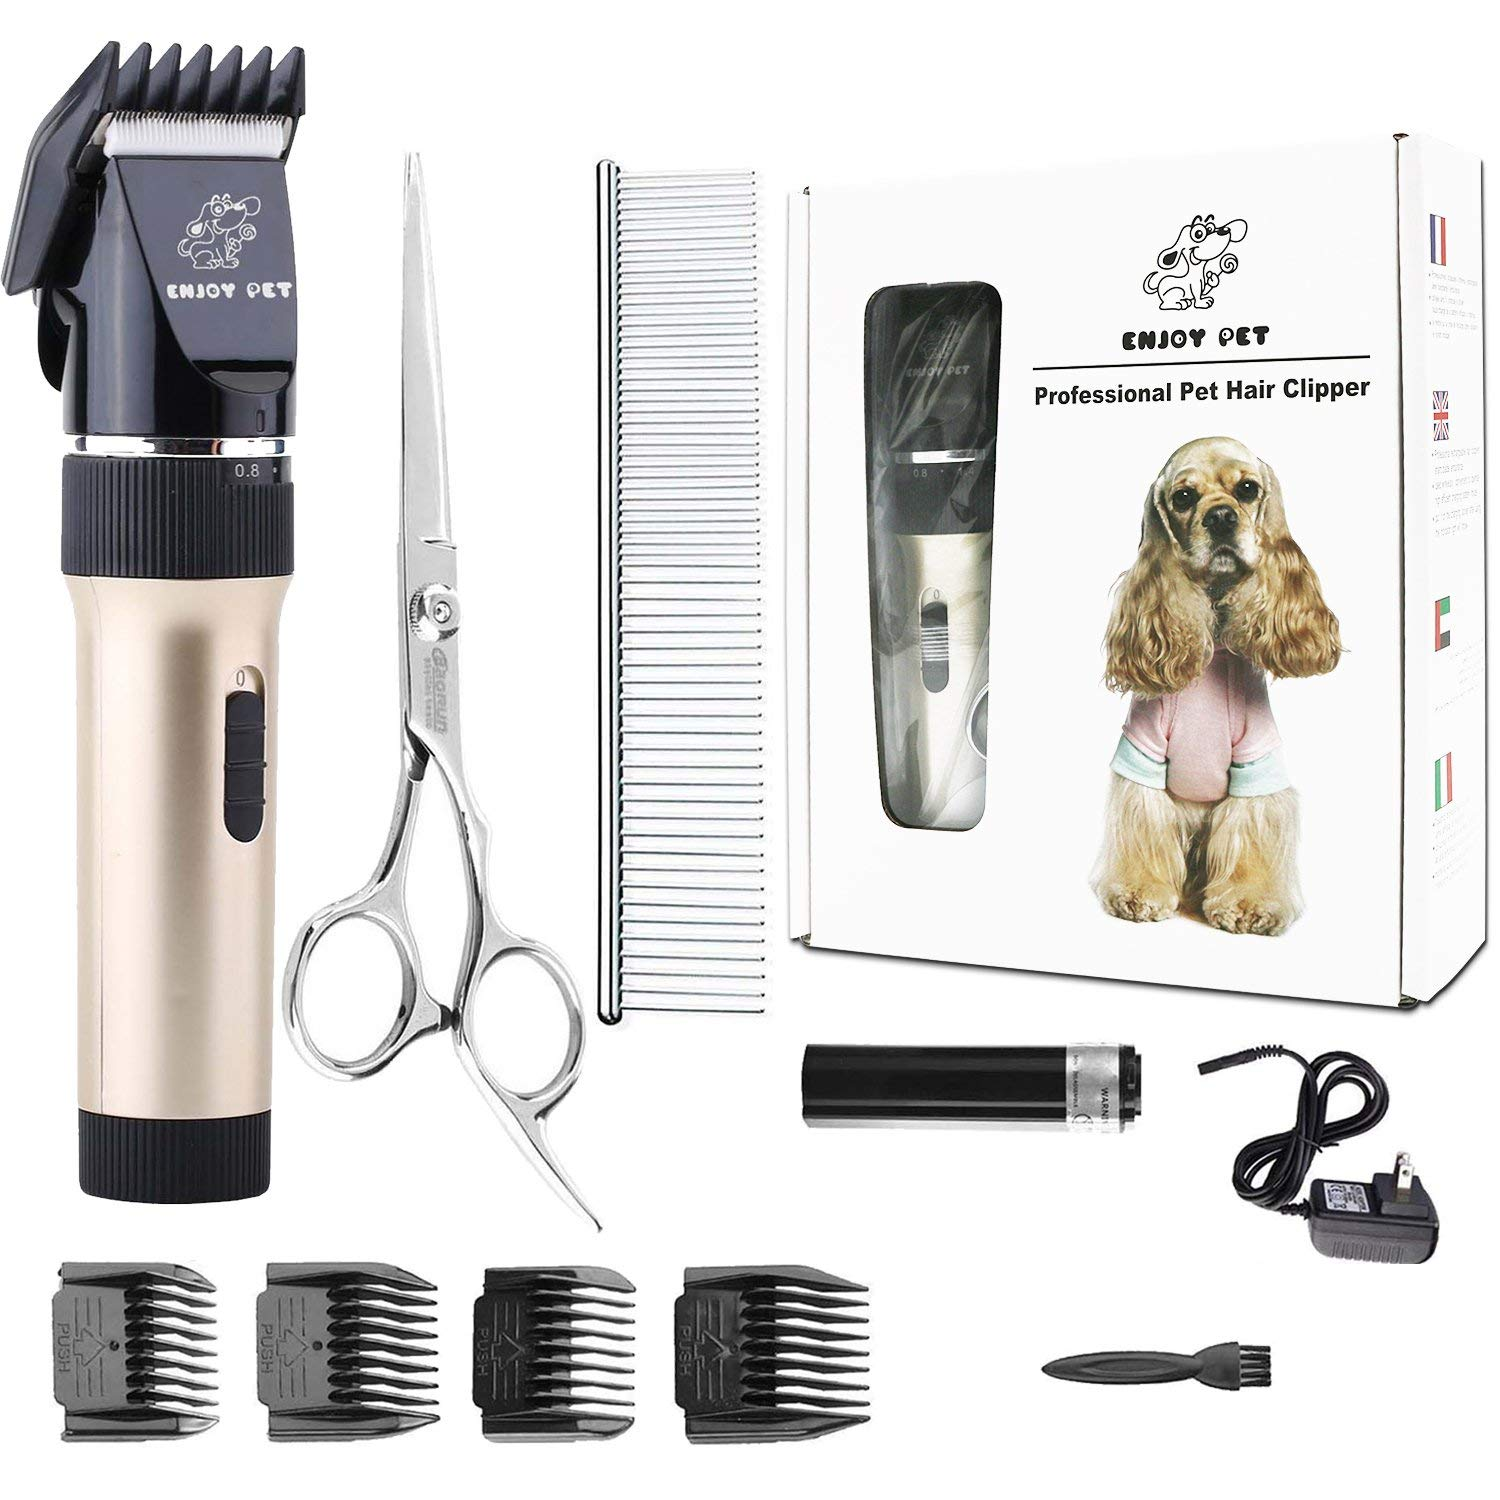 ENJOY PET Best Dog Grooming Clippers Kit Review by www.puppyurl.com